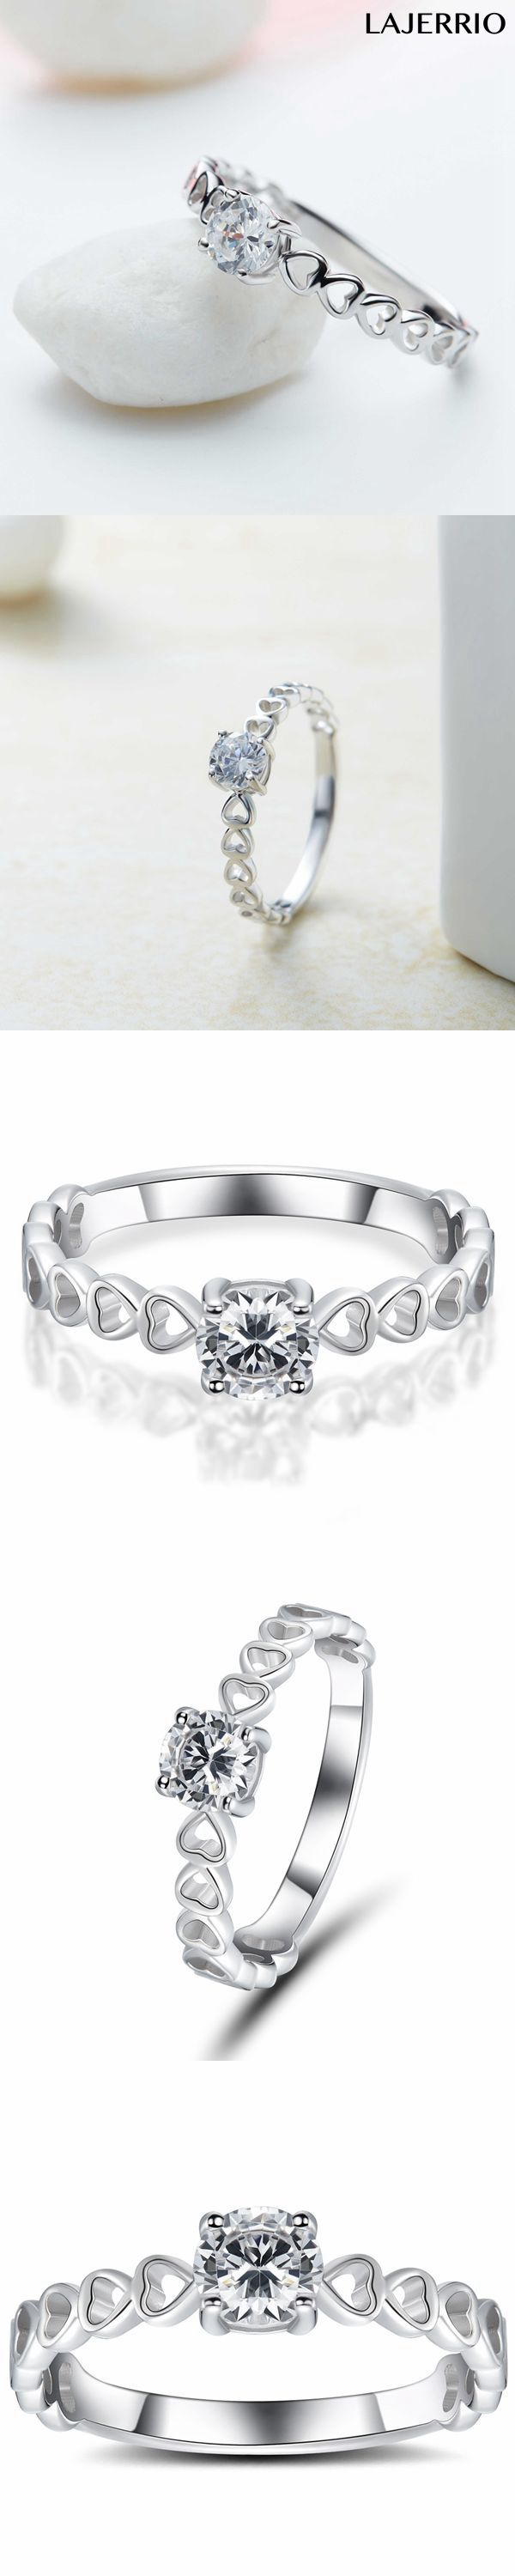 1b248c439625c 0.5CT Round Cut White Sapphire 925 Sterling Silver Promise Rings For ...